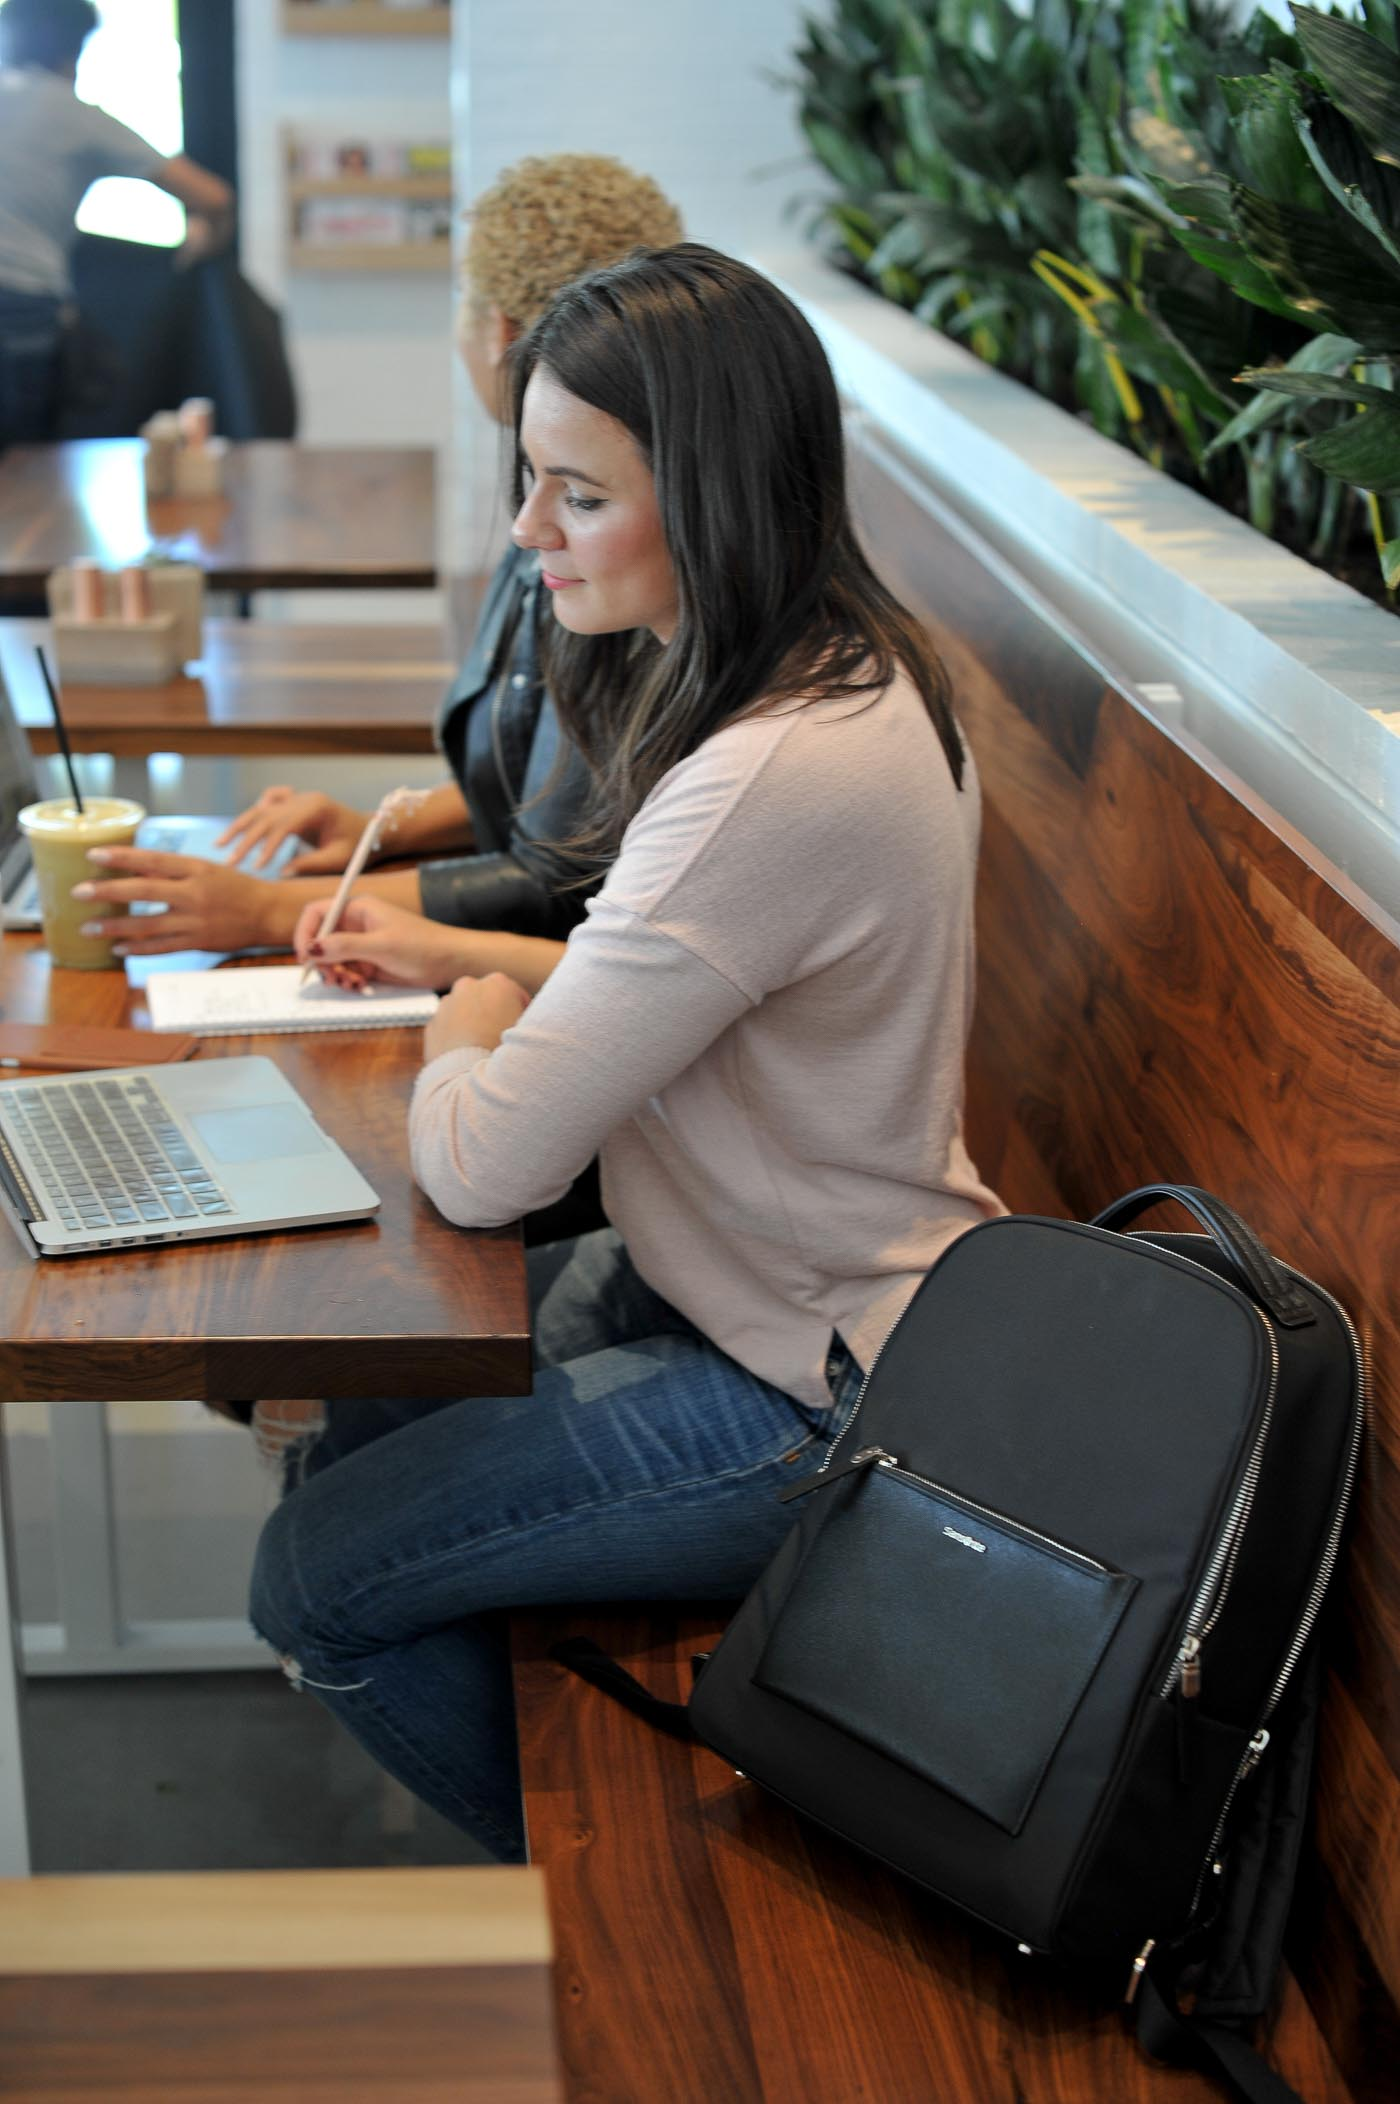 best backpack for a laptop, a stylish laptop backpack - My Style Vita @mystylevita